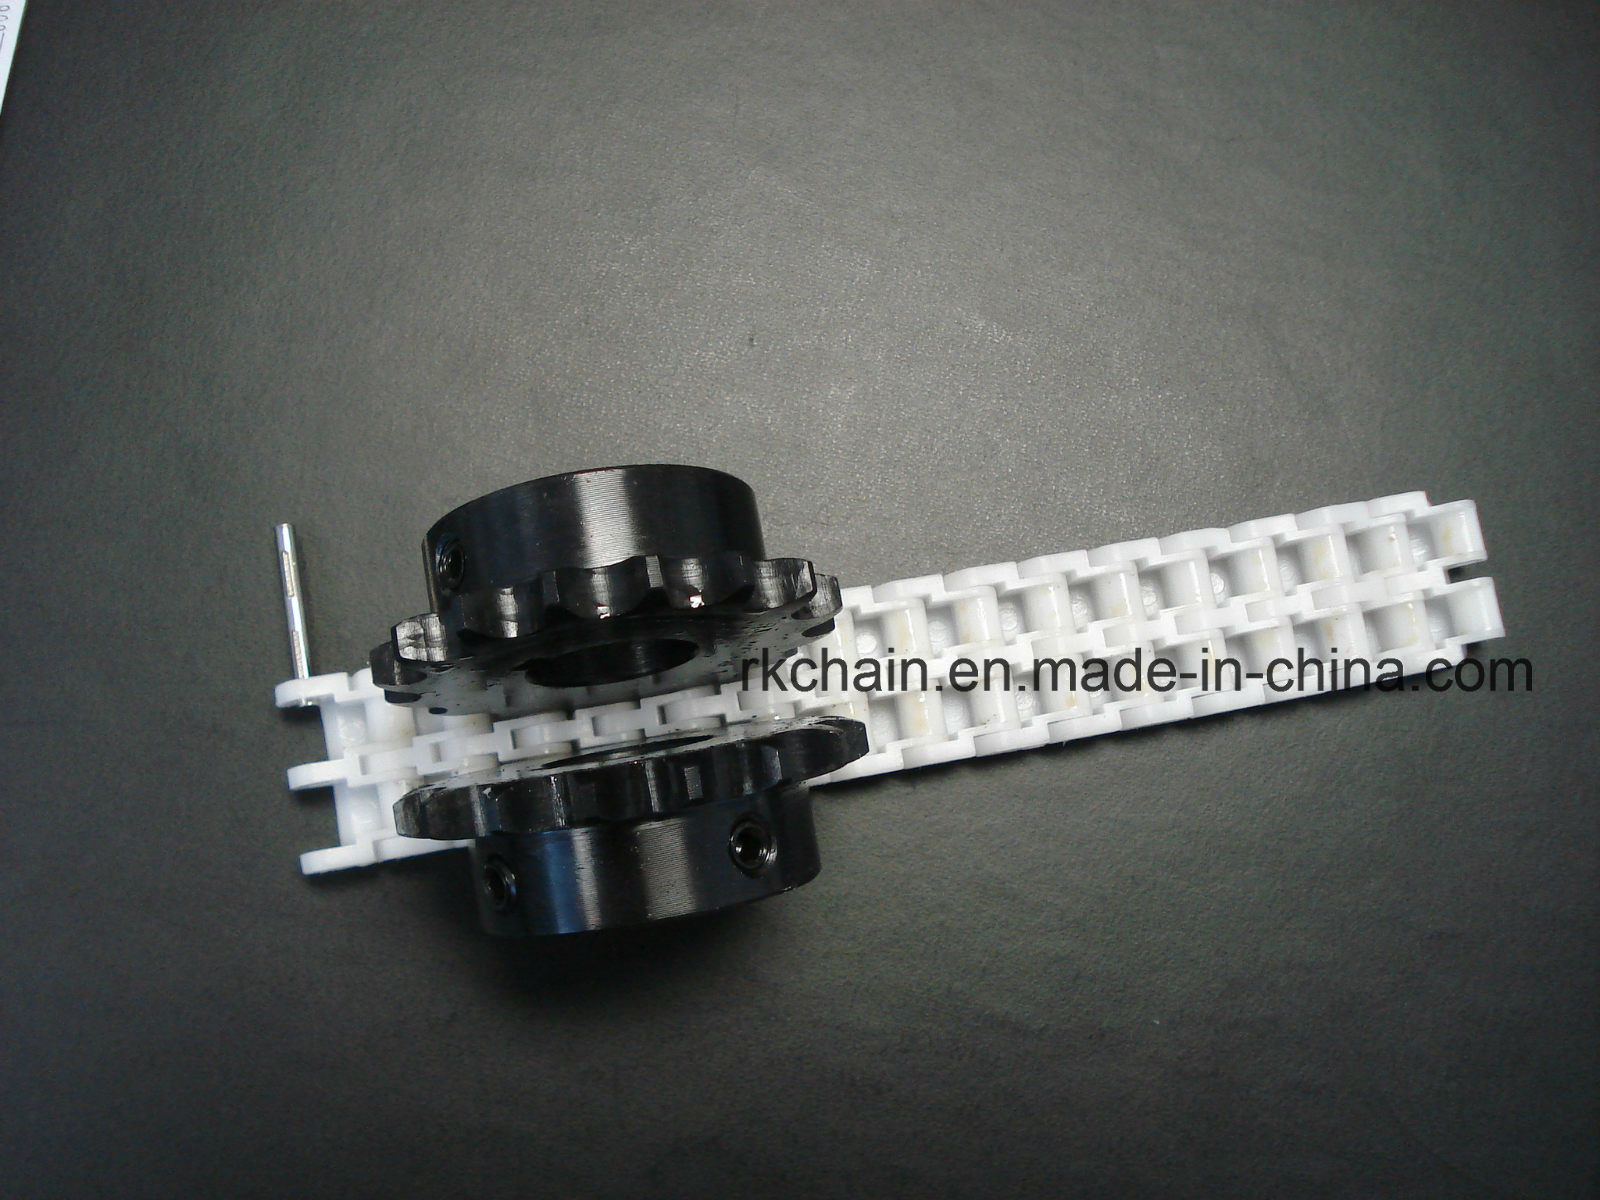 Plastic Conveyor Chain in POM for Transmission